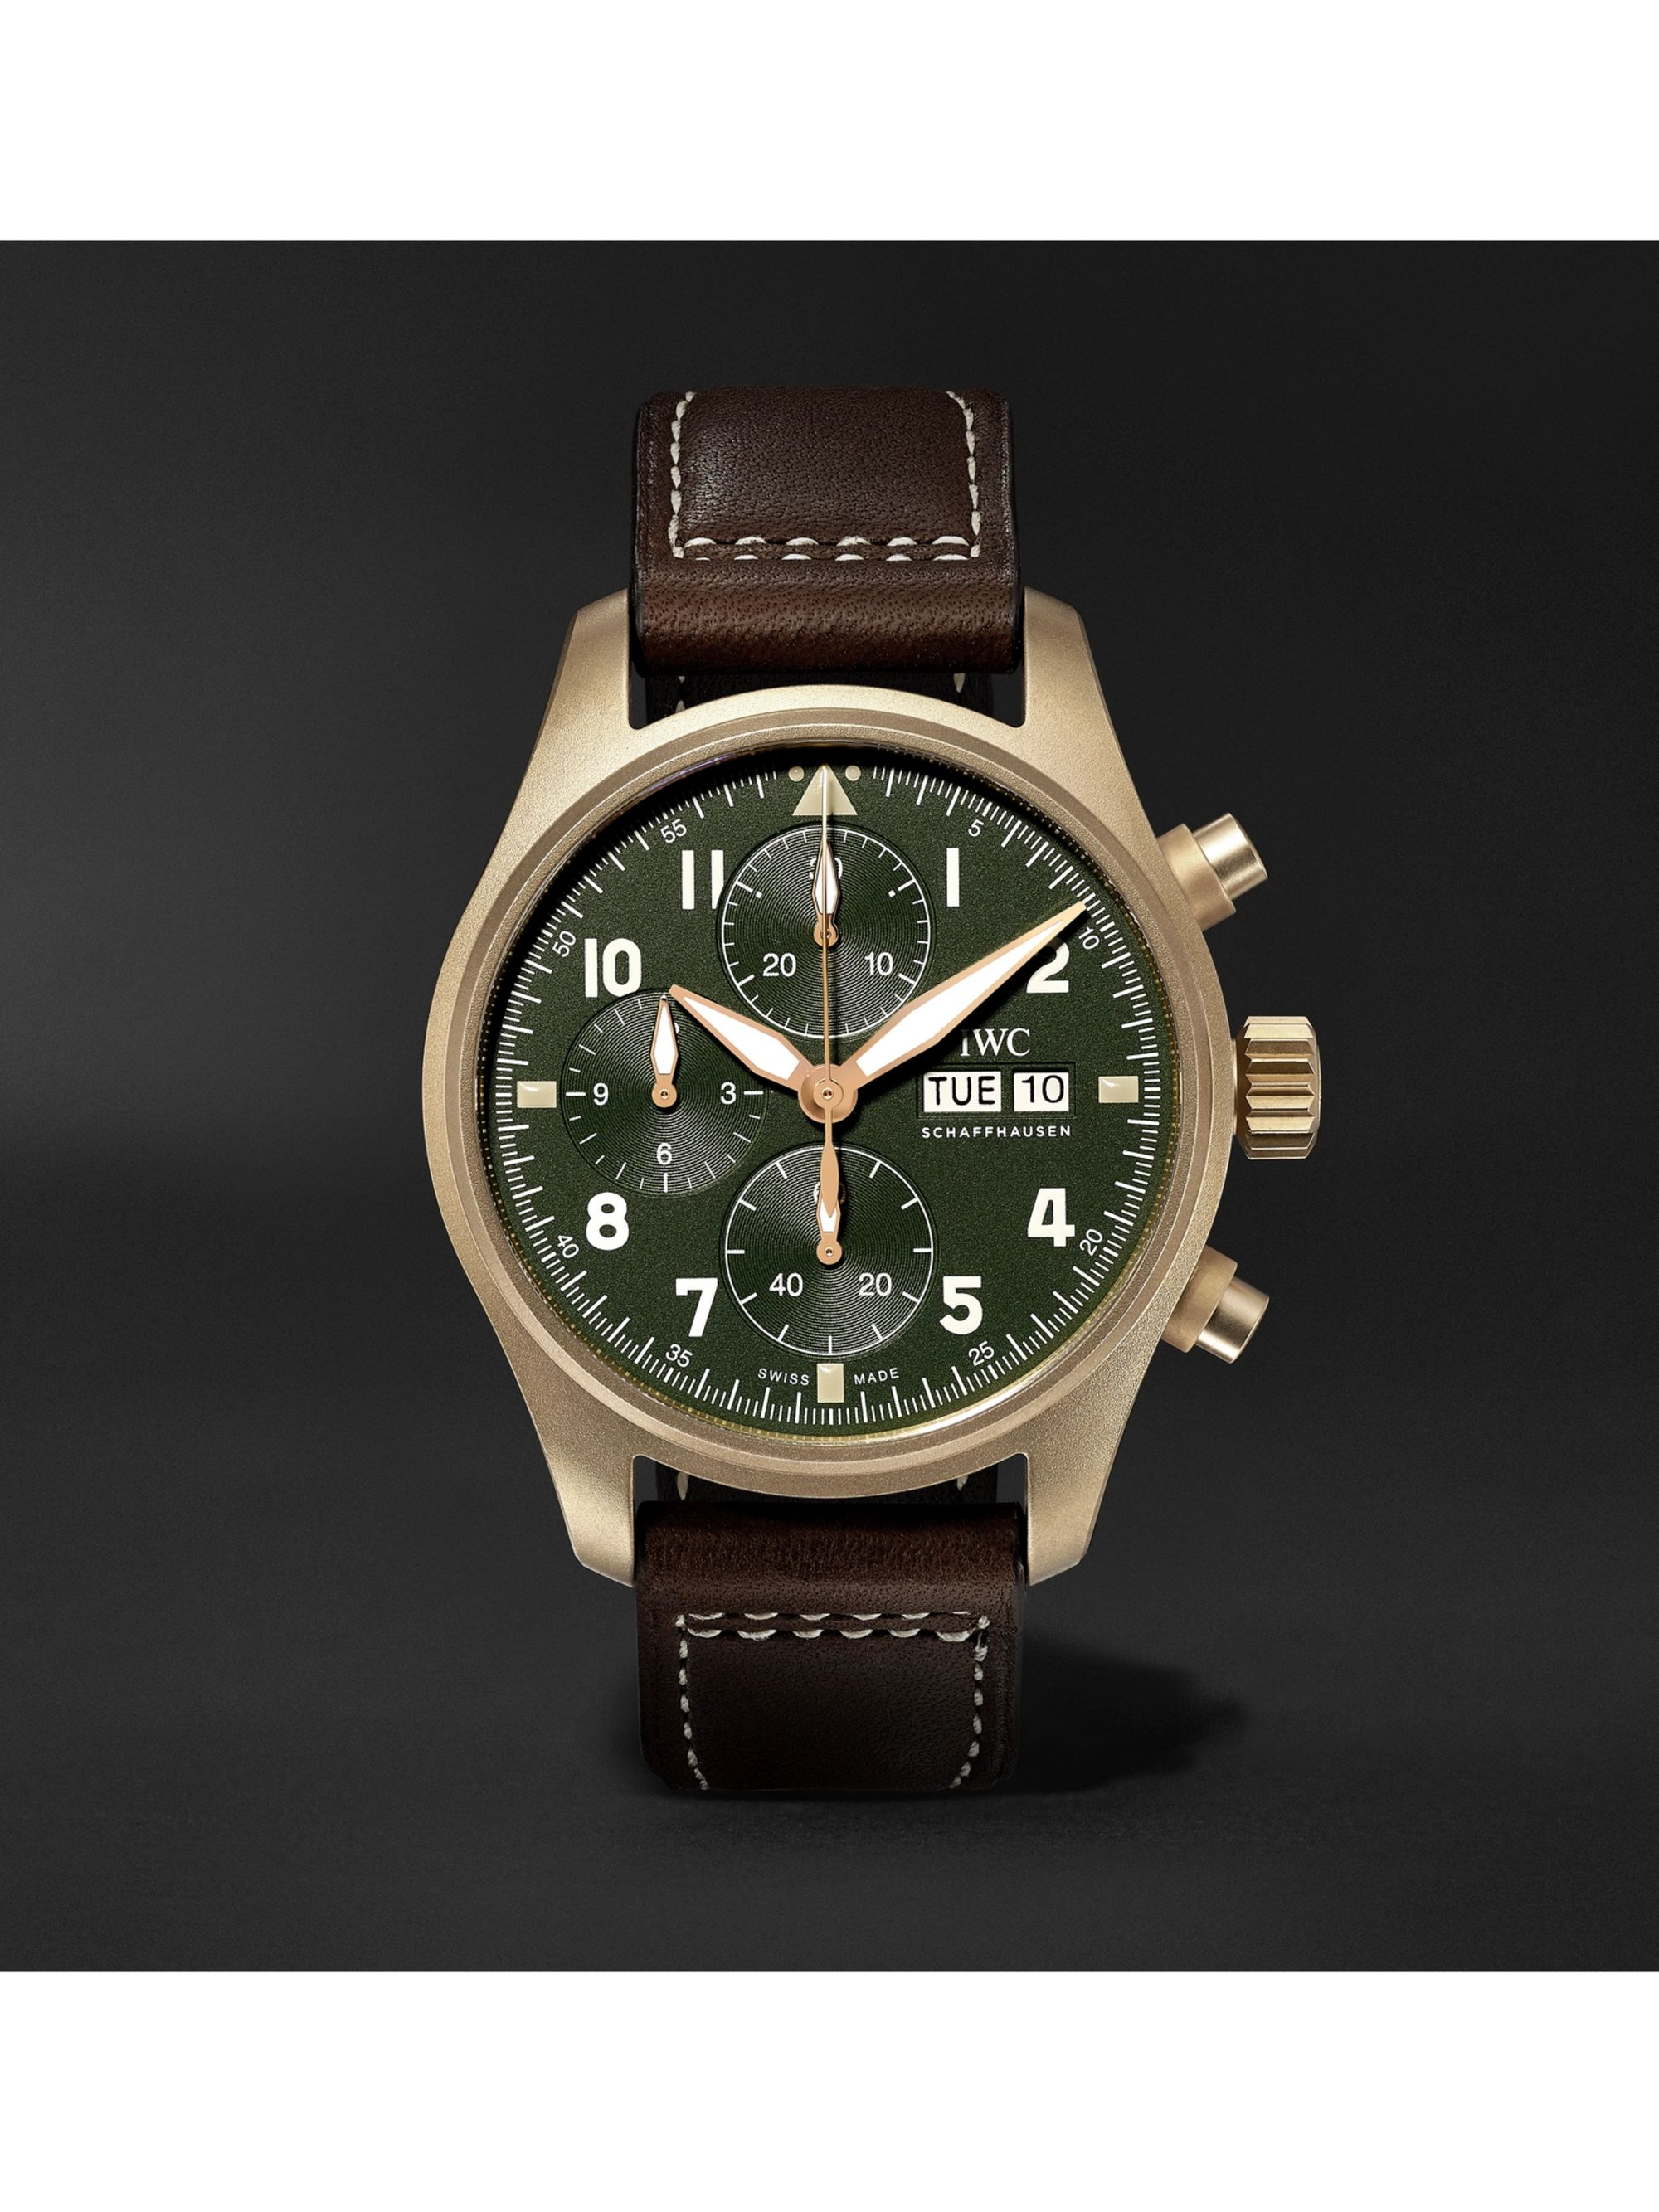 Pilot S Spitfire Automatic Chronograph 41mm Bronze And Leather Watch